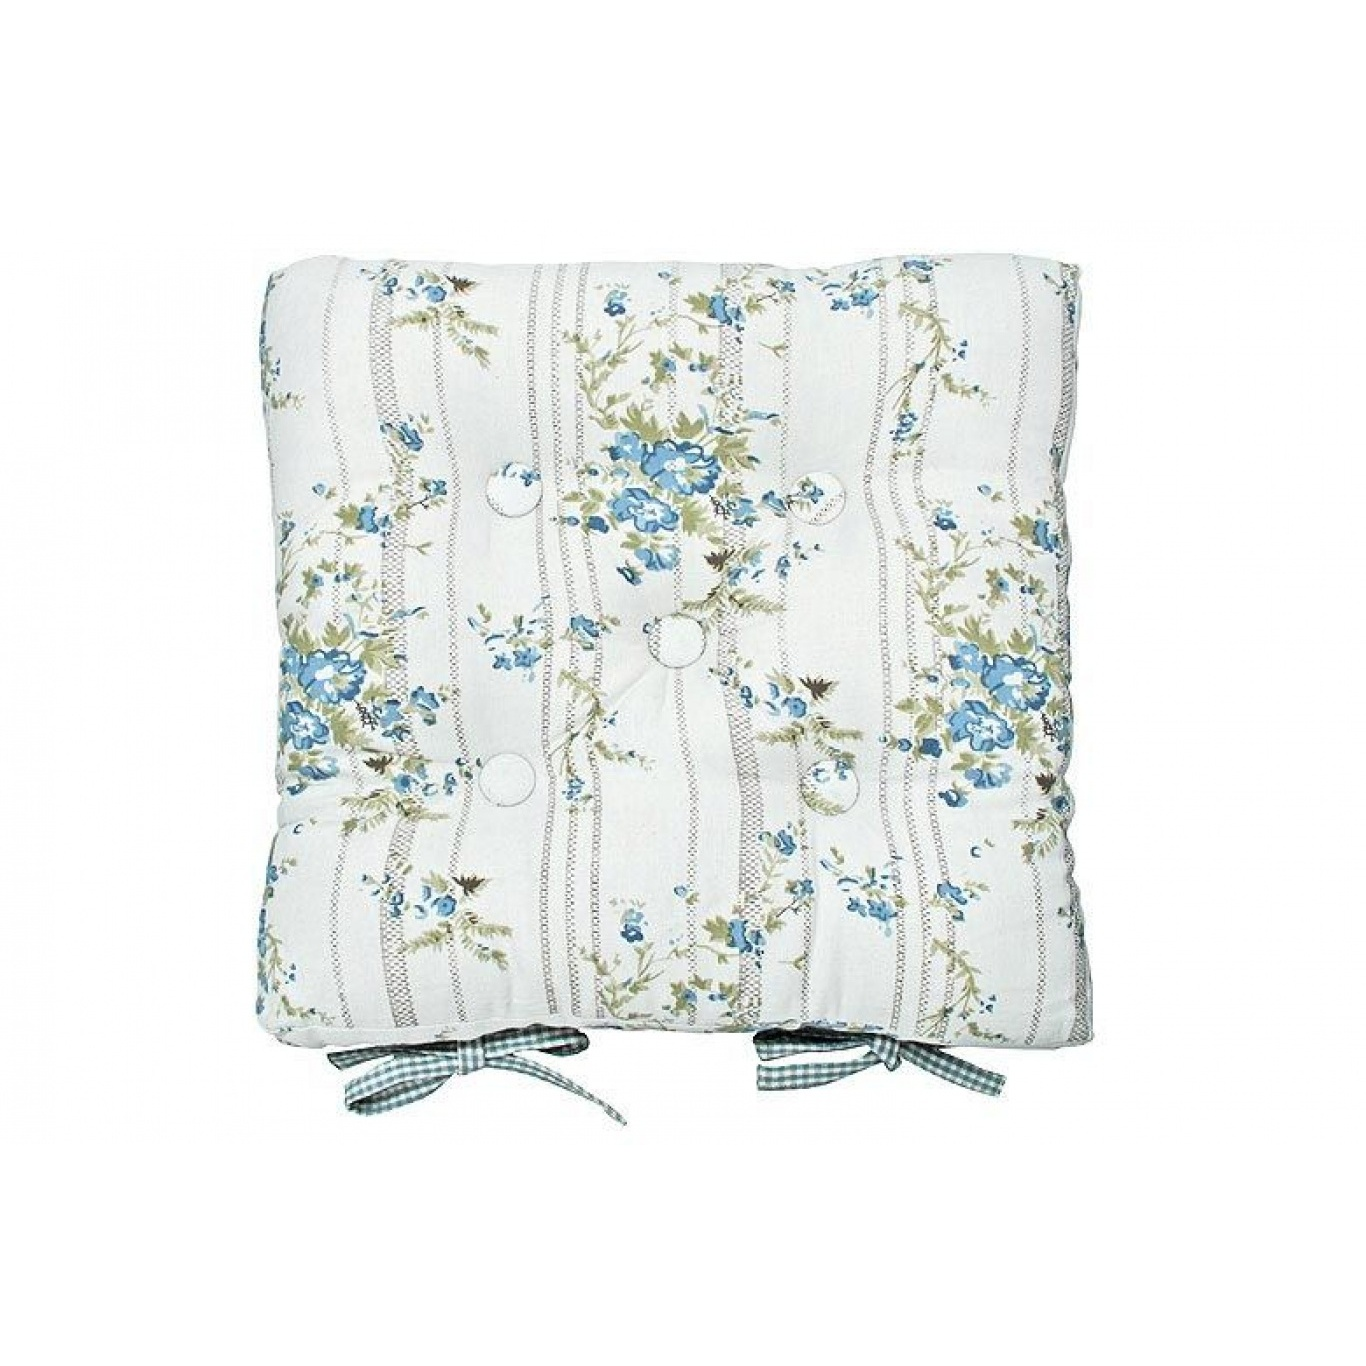 Image of Bluebell Cottage Seat Pad